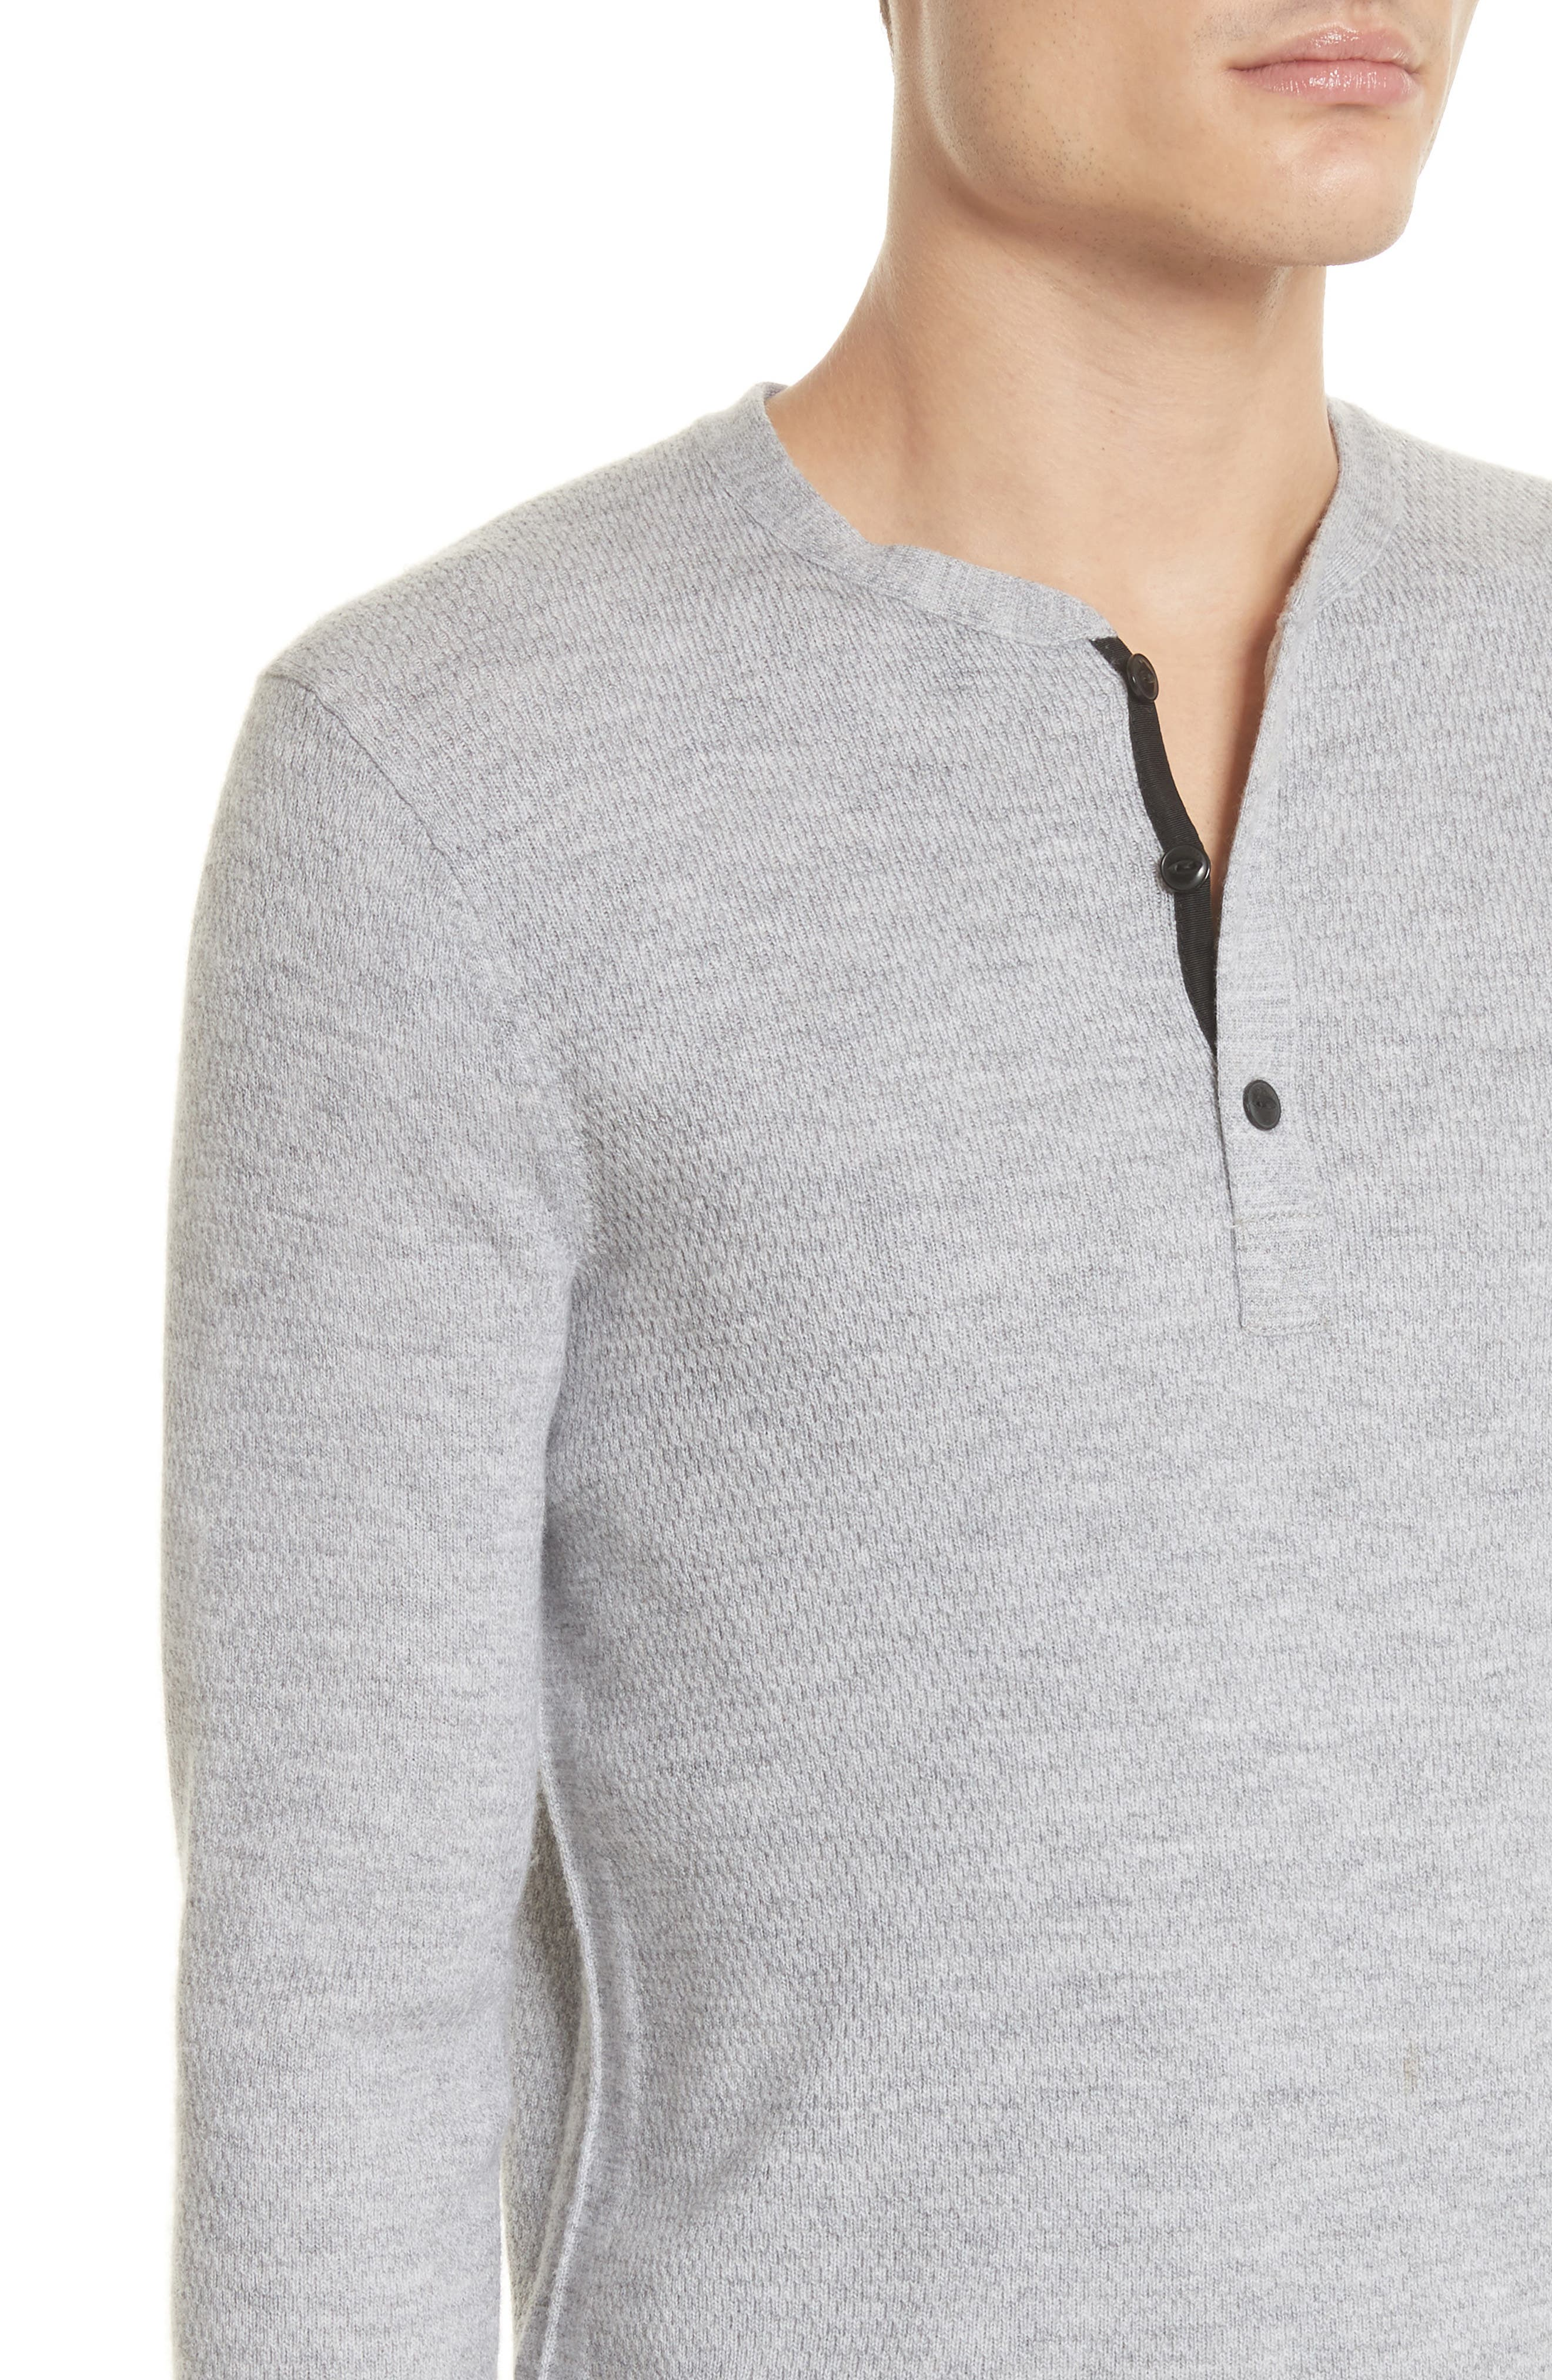 Gregory Wool Blend Thermal Henley,                             Alternate thumbnail 4, color,                             Grey